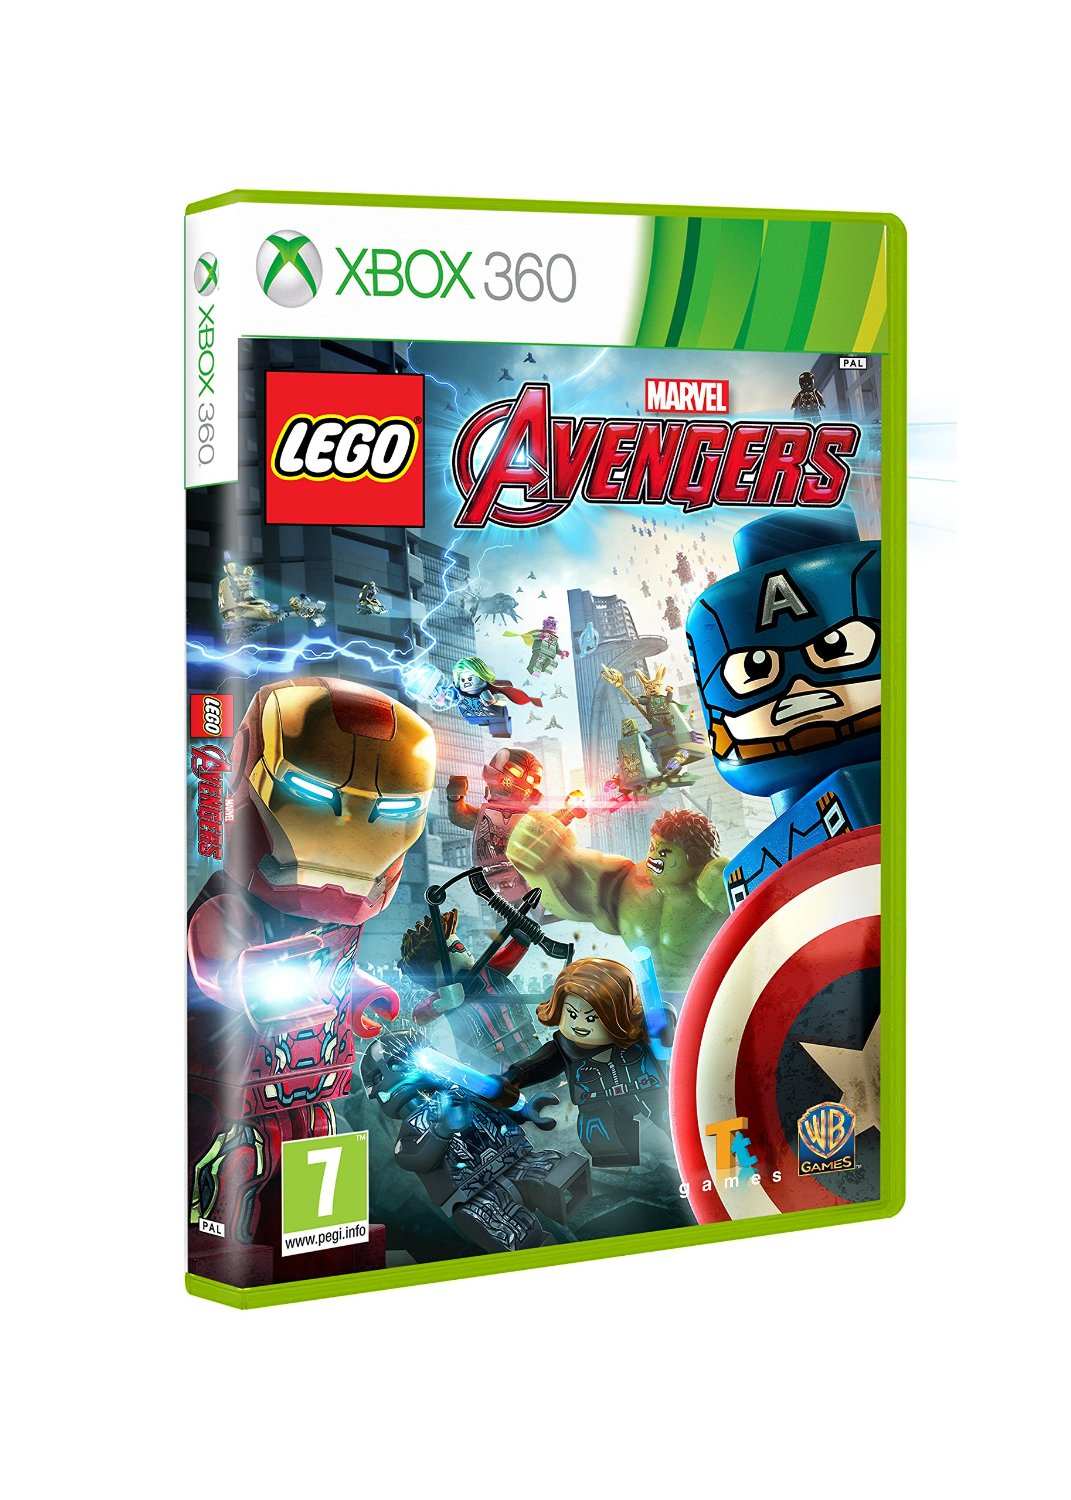 Amazon.com: Lego Marvel Avengers (Xbox 360): Video Games